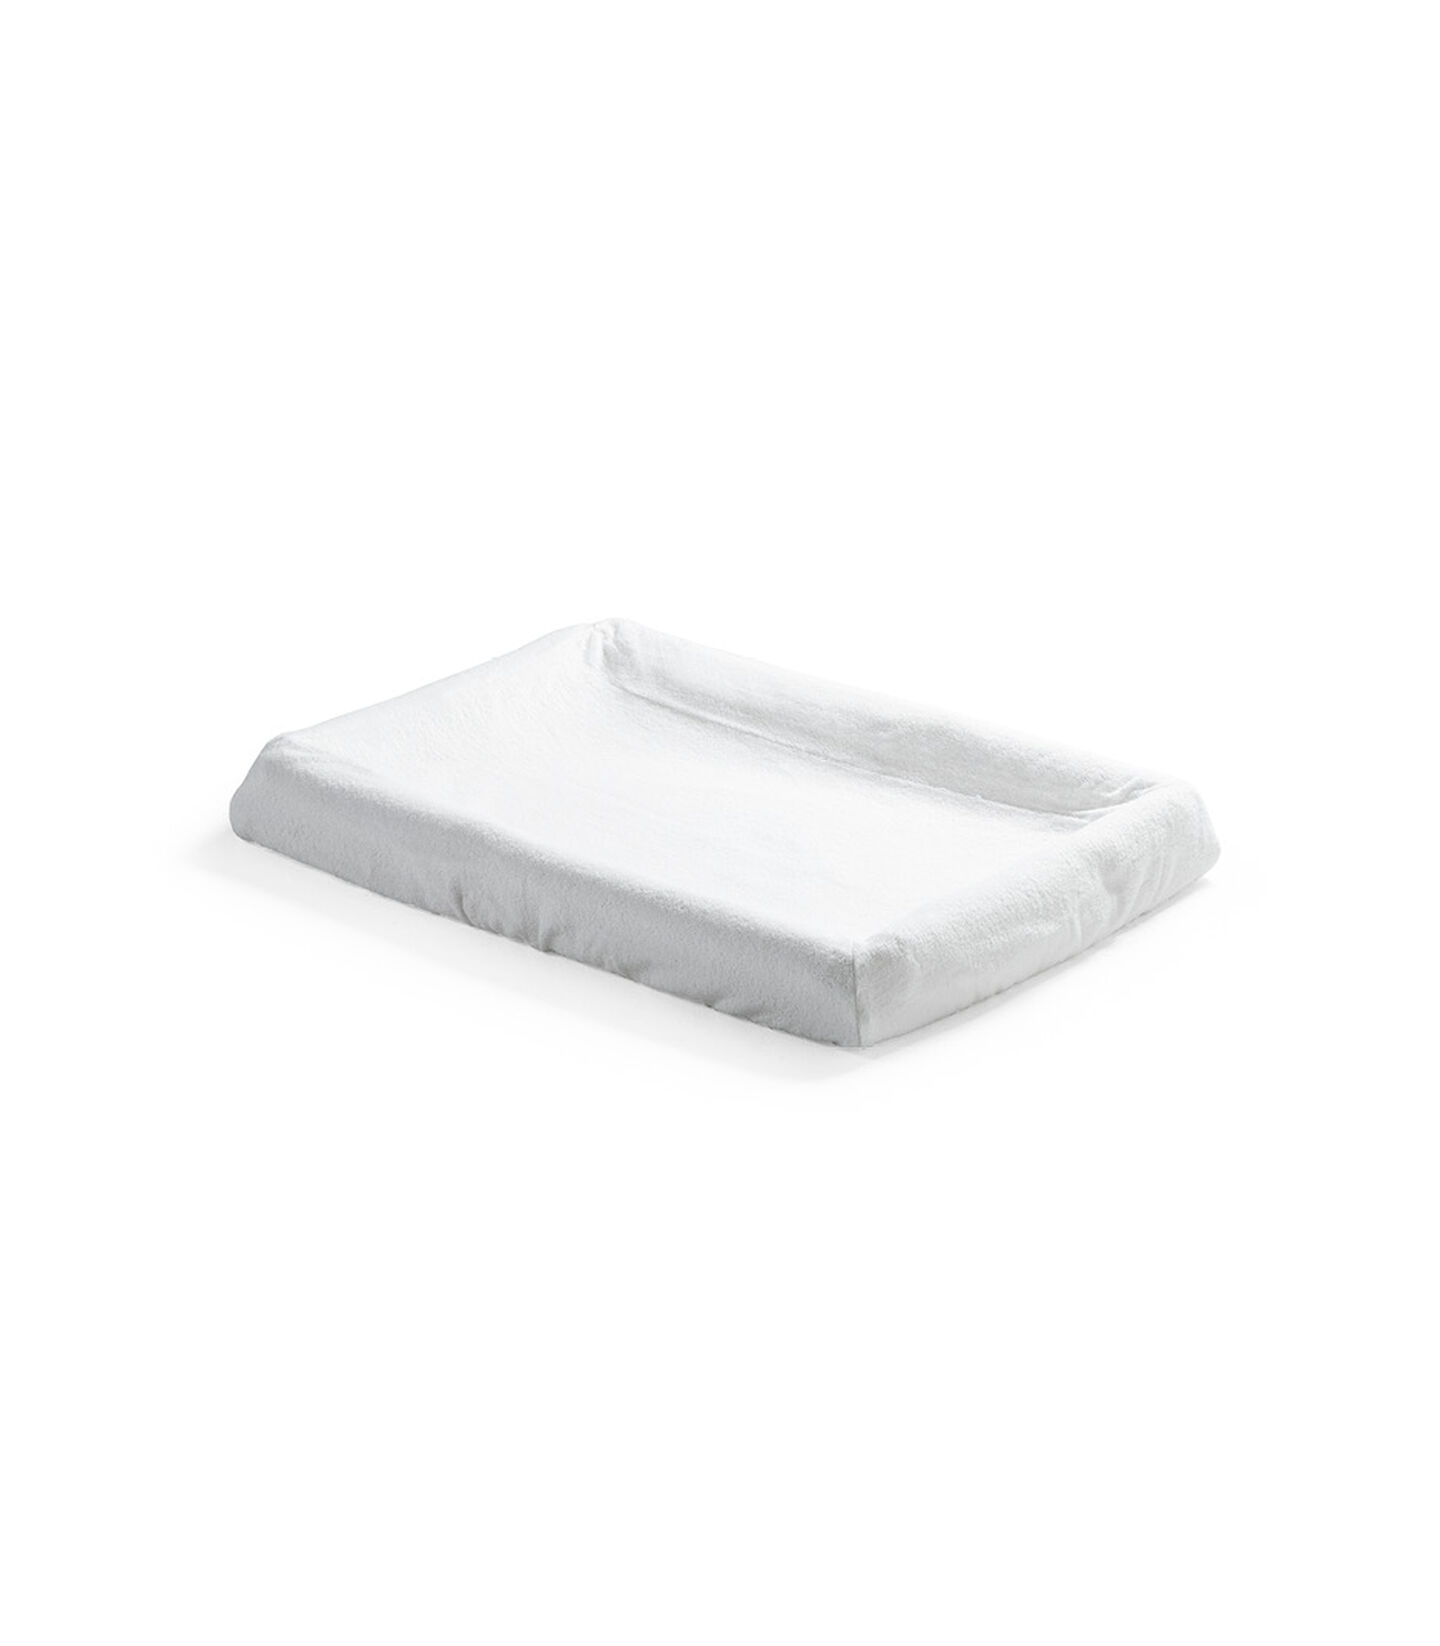 Stokke® Home™ Changer Mattress Cover 2pc White, , mainview view 1